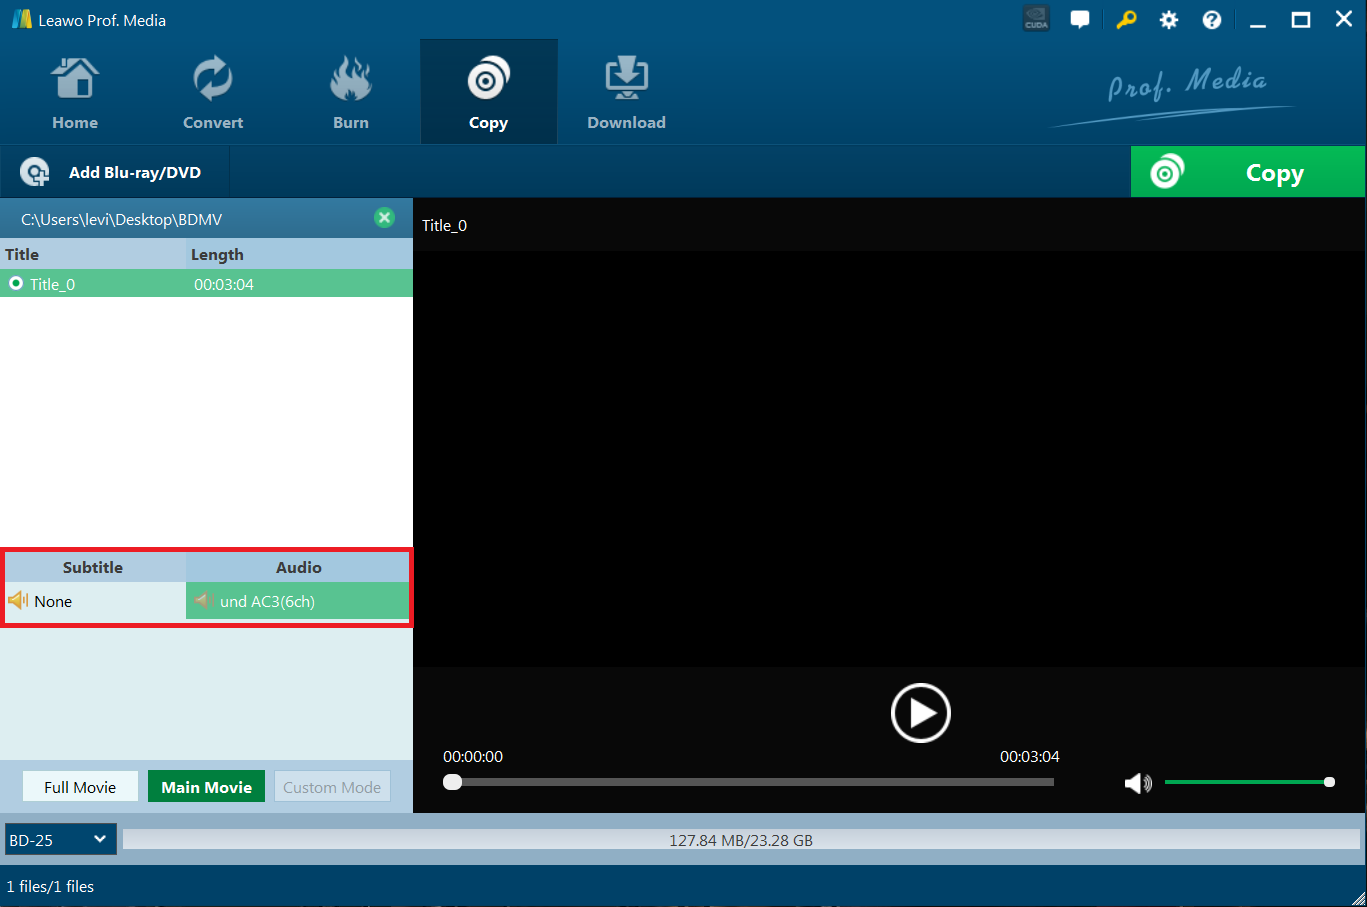 select-subtitles-and-audio-track